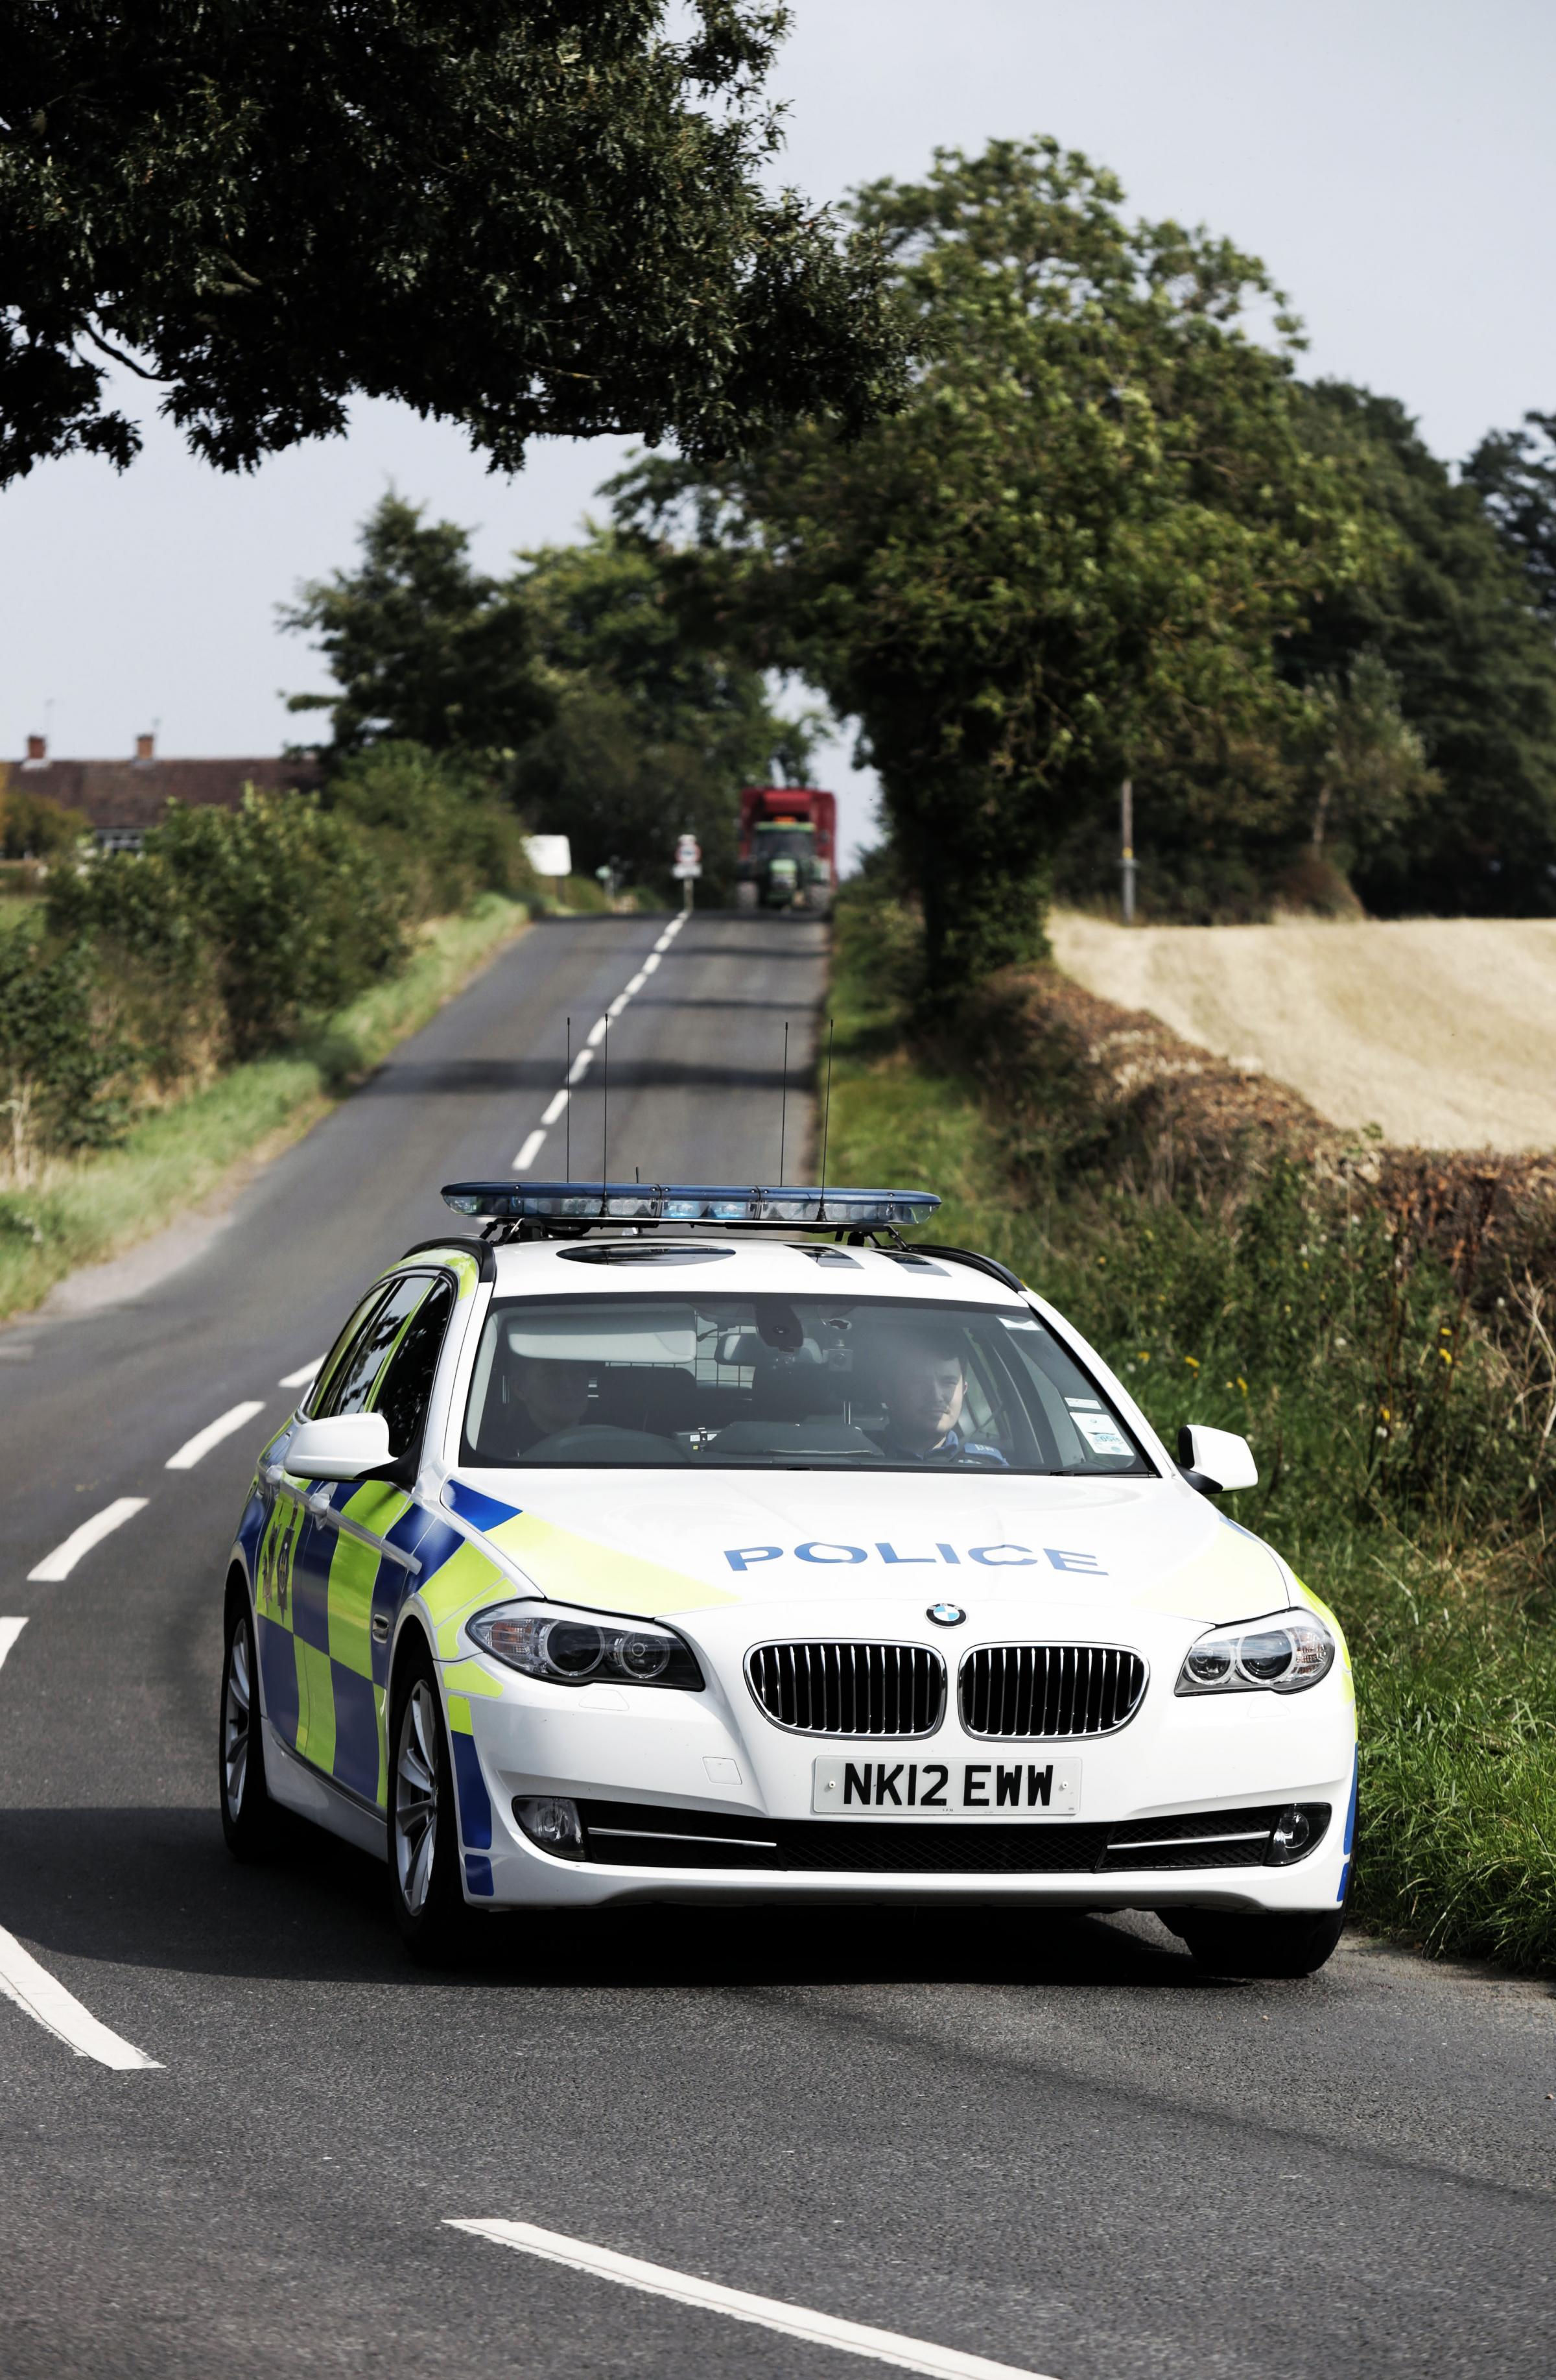 Police will be out in force Picture: STUART BOULTON.